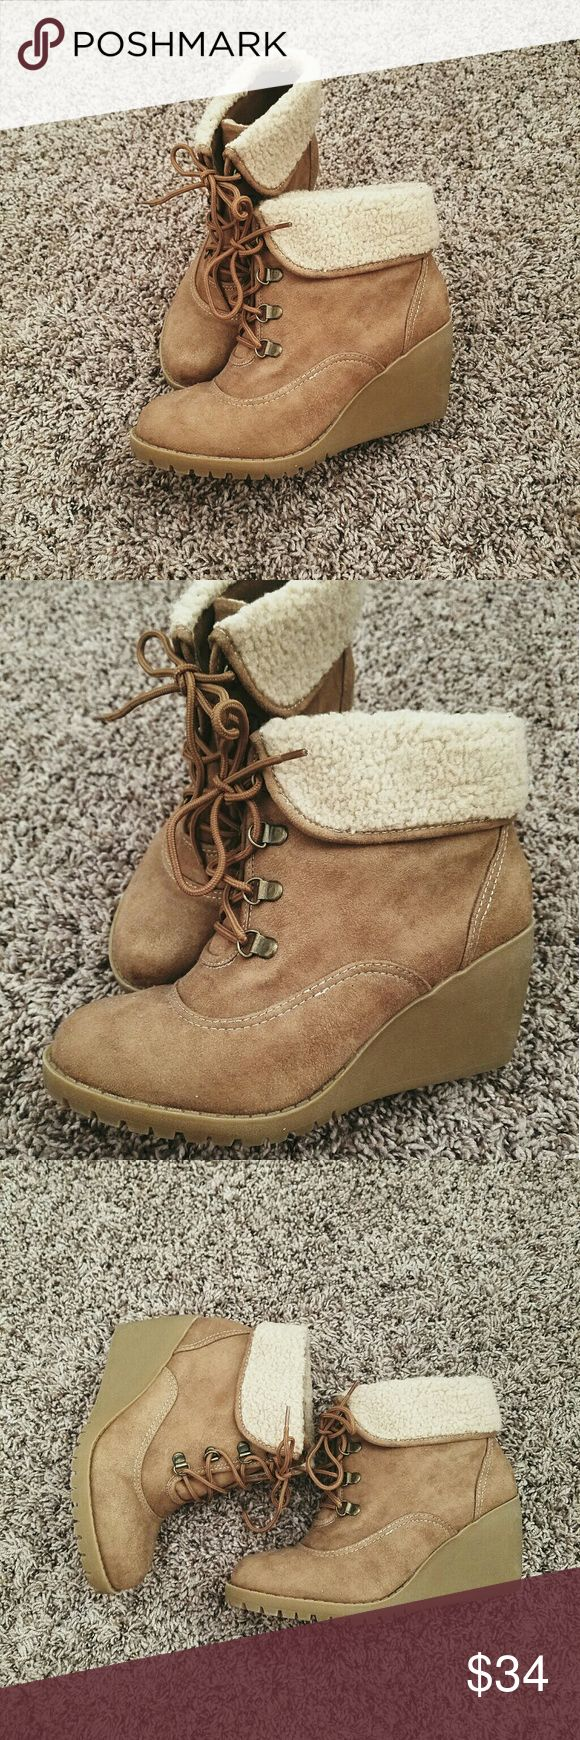 Suede Wedge Work Boots Worn once.  Excellent condition. Timberland style with a wedge heel. Mudd Shoes Ankle Boots & Booties